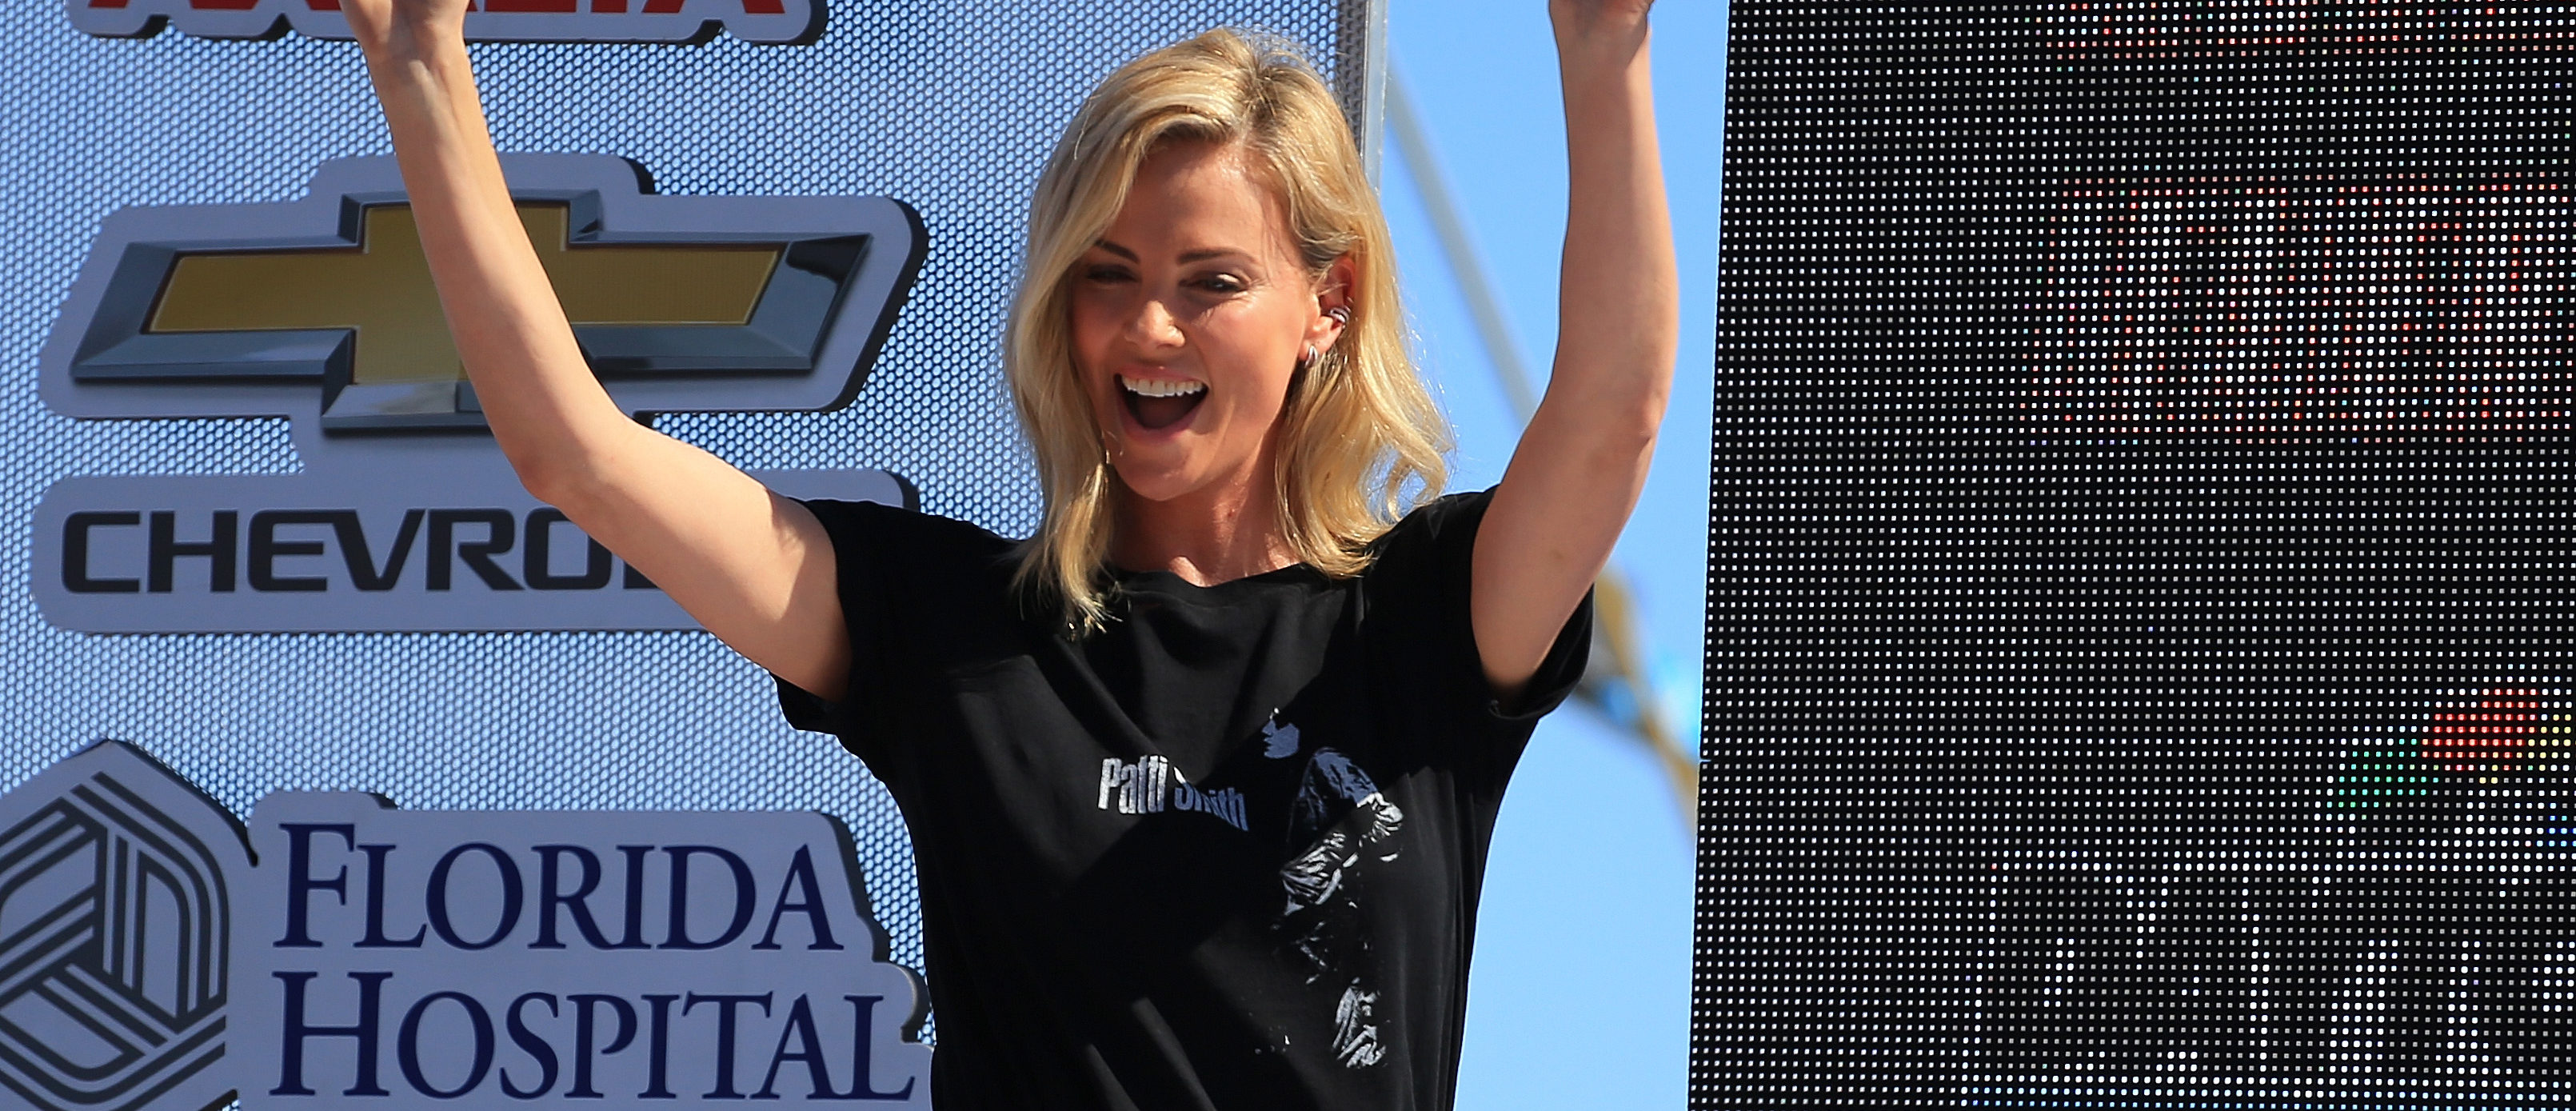 Actress Charlize Theron is introduced prior to the Monster Energy NASCAR Cup Series 60th Annual Daytona 500 at Daytona International Speedway on February 18, 2018 in Daytona Beach, Florida. (Photo by Daniel Shirey/Getty Images)